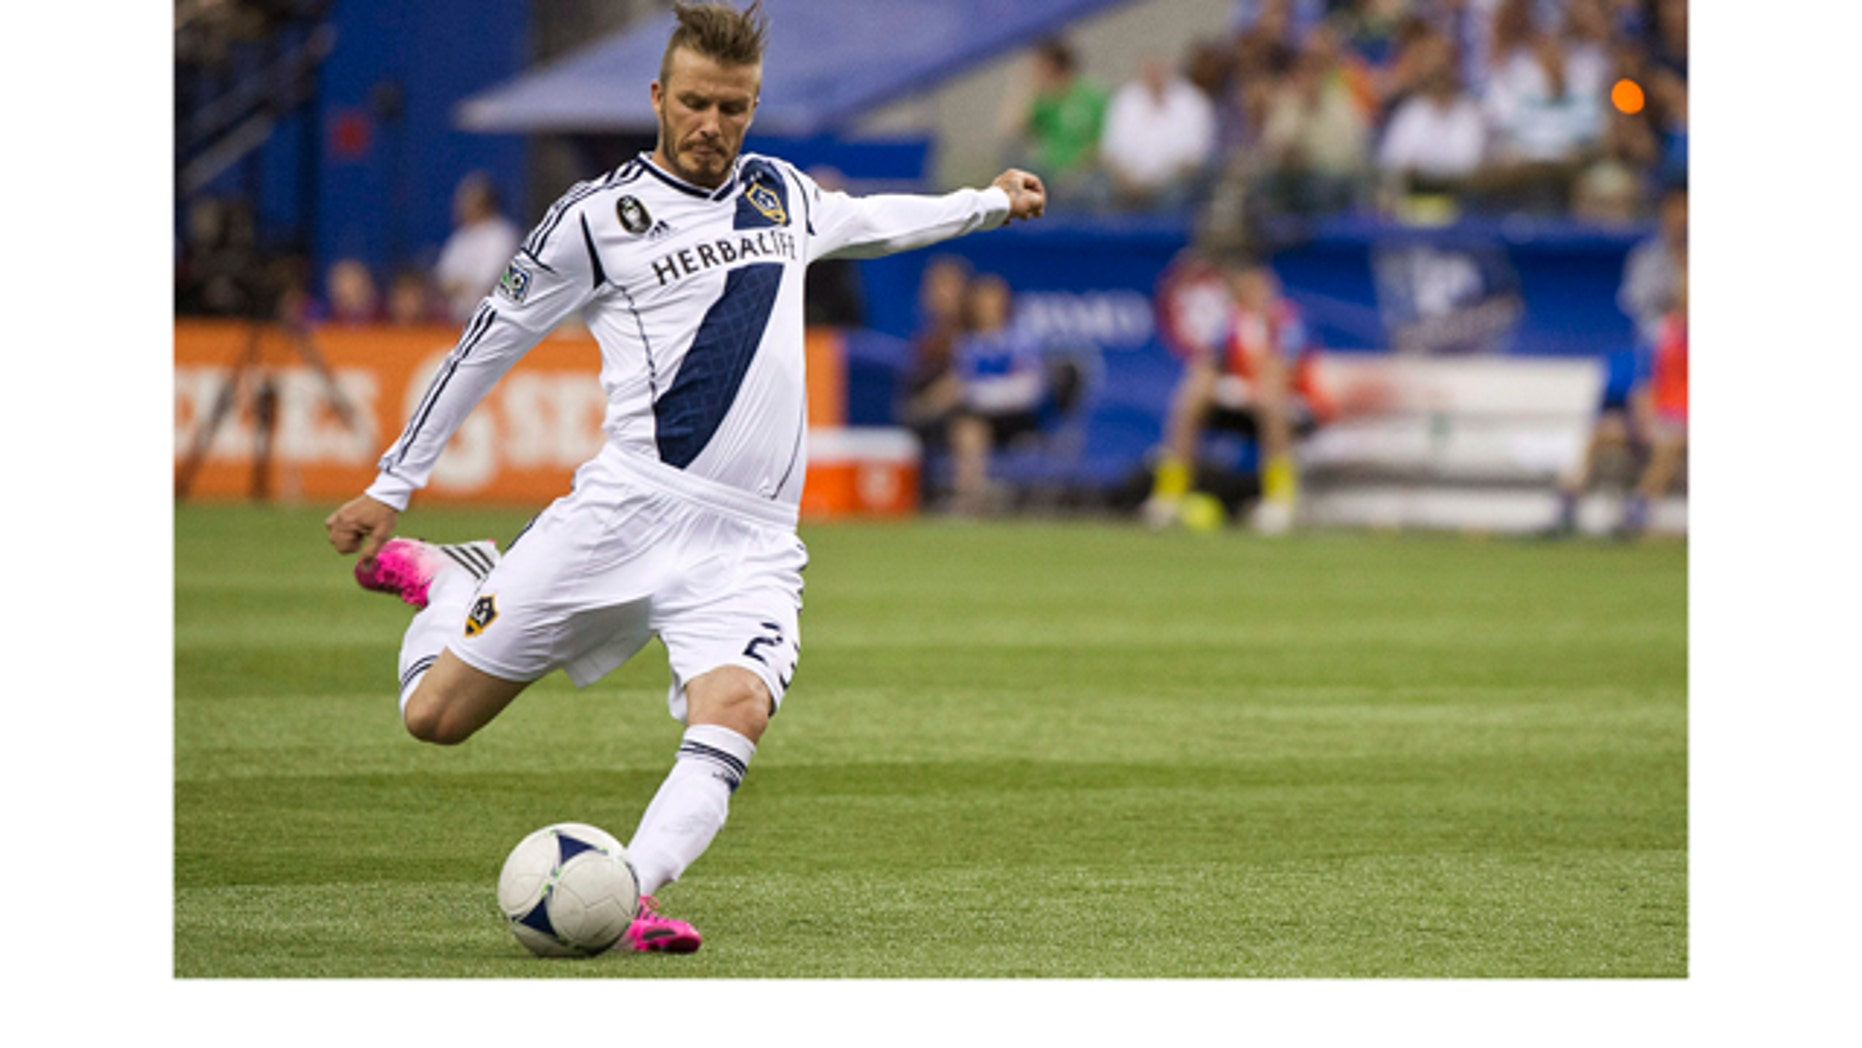 May 12, 2012: Los Angeles Galaxy's David Beckham scores a goal against the Montreal Impact during the second half of an MLS soccer match in Montreal.